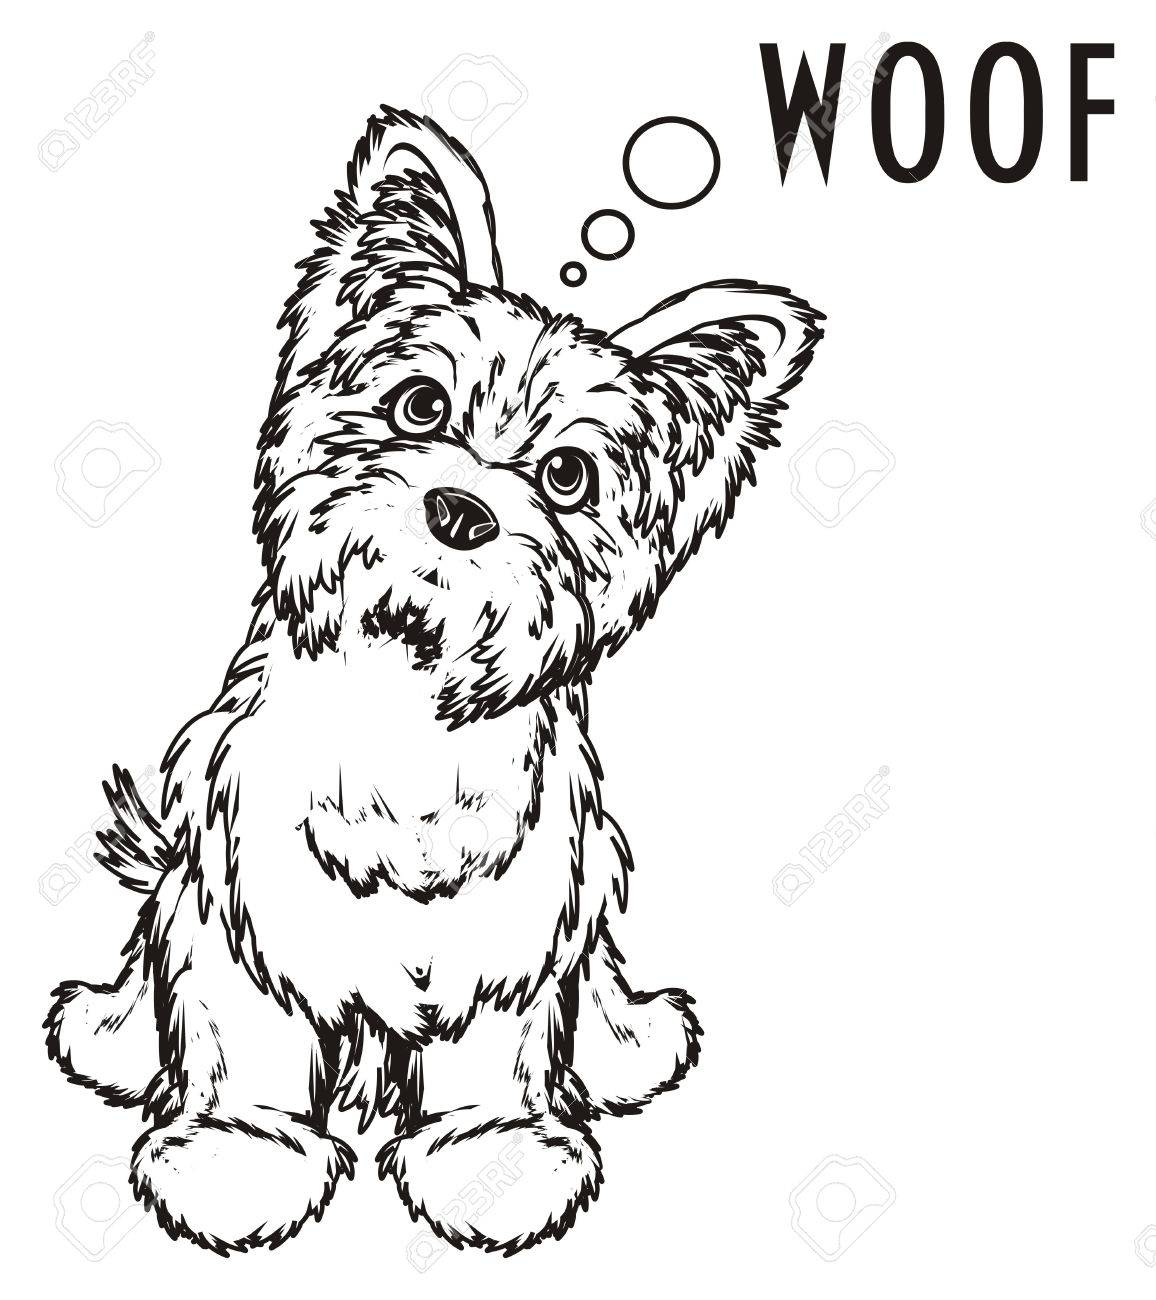 Coloring Yorkshire Terrier And Word Woof Stock Photo, Picture And ...